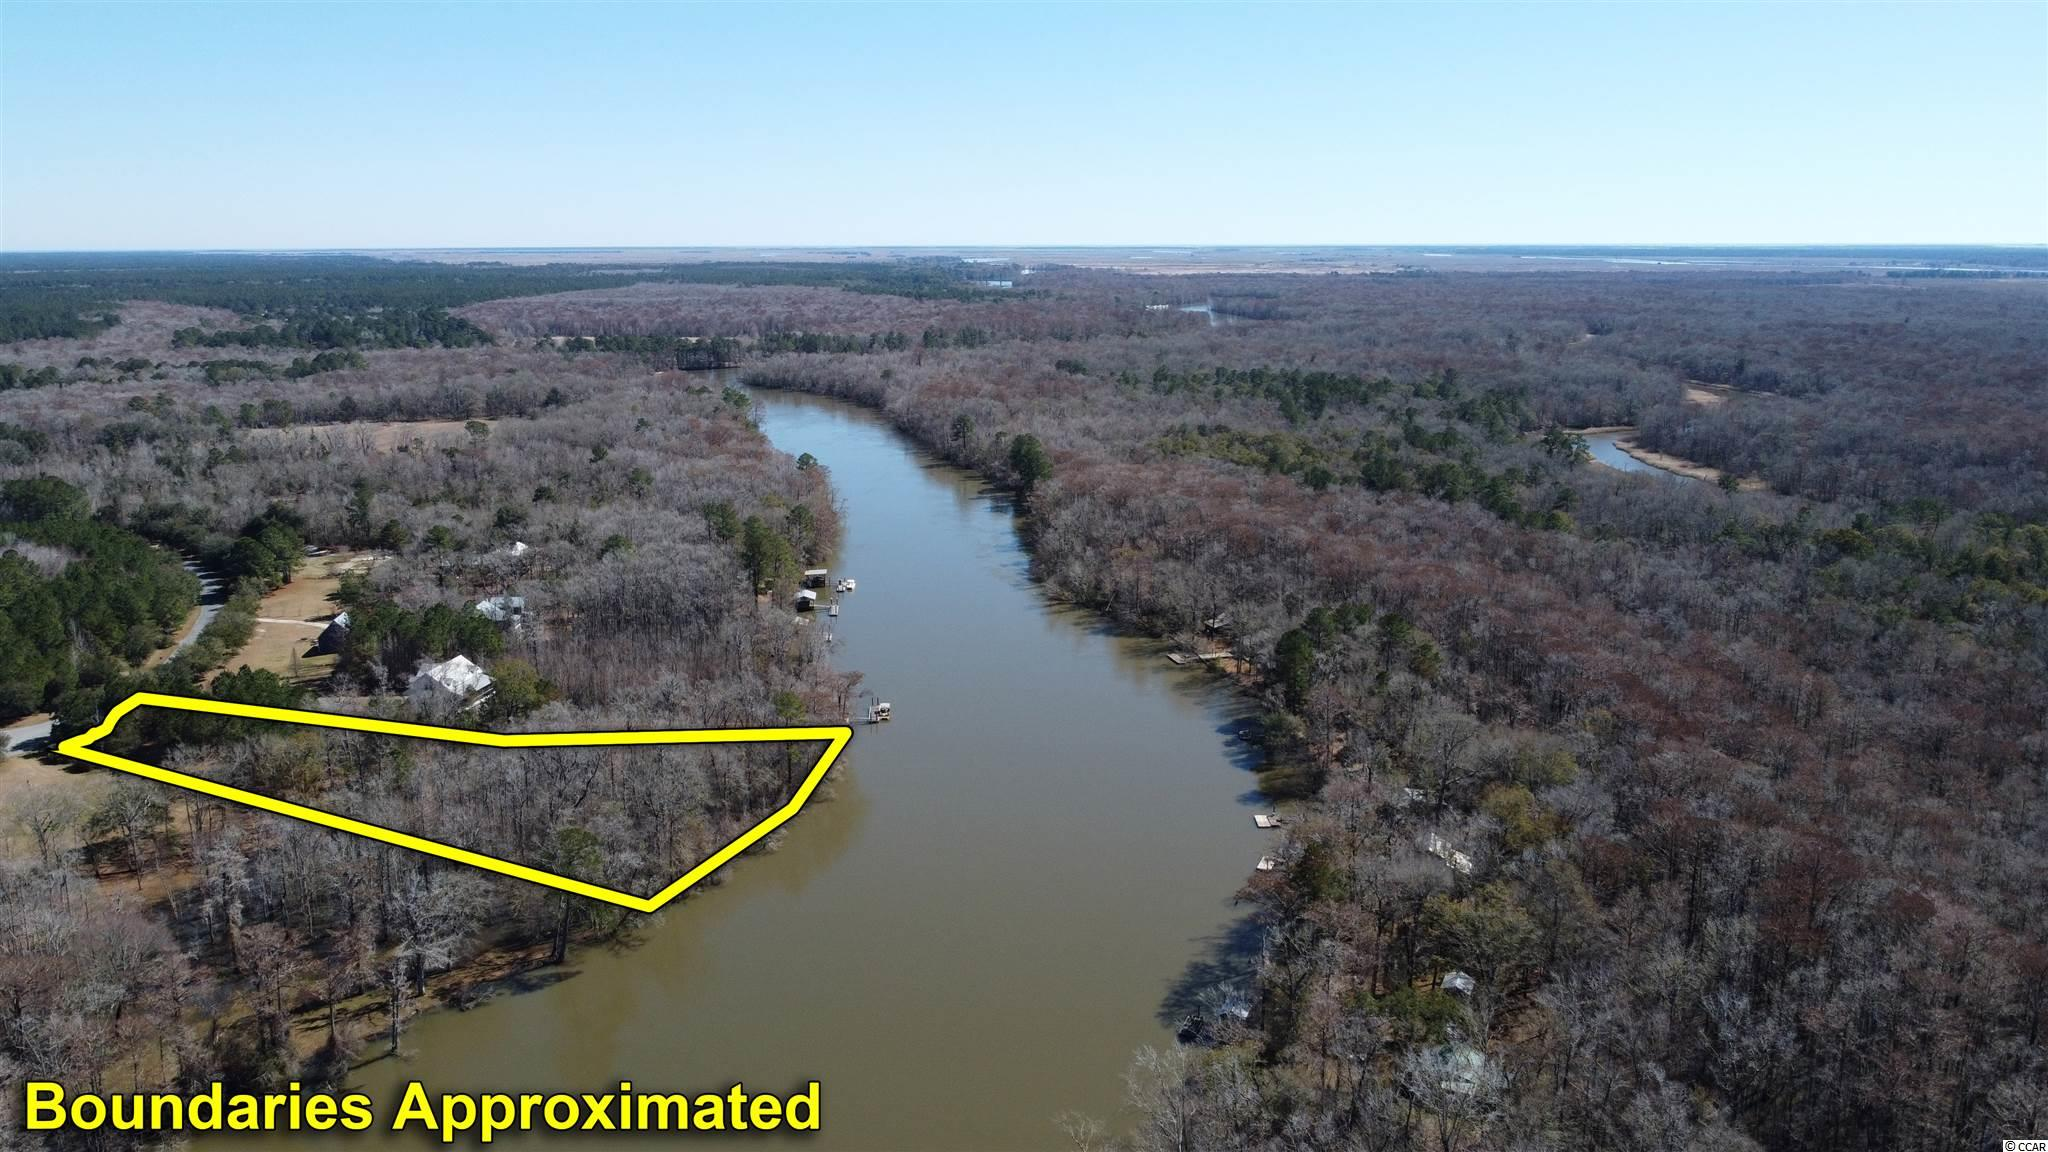 Deep Water - North Santee River. Build your dream house on this 2.67 acre lot in Belleflower Subdivision. With good access to the Atlantic Ocean and just up stream from Hopsewee and The Oaks Plantations, this property offers great opportunities for some of the best salt and freshwater fishing in the Lowcountry. With over 300 ft of deep riverfront you'll have plenty of room to build a sizable dock and pierhead to accommodate your outdoor activities and take in all the pristine natural beauty the delta area has to offer. Nice quiet neighbor hood with underground electricity and municipal water/sewer access. Only minutes to downtown shopping and dining in historic Georgetown and an hours drive to Charleston or Myrtle Beach. Call for your showing today!